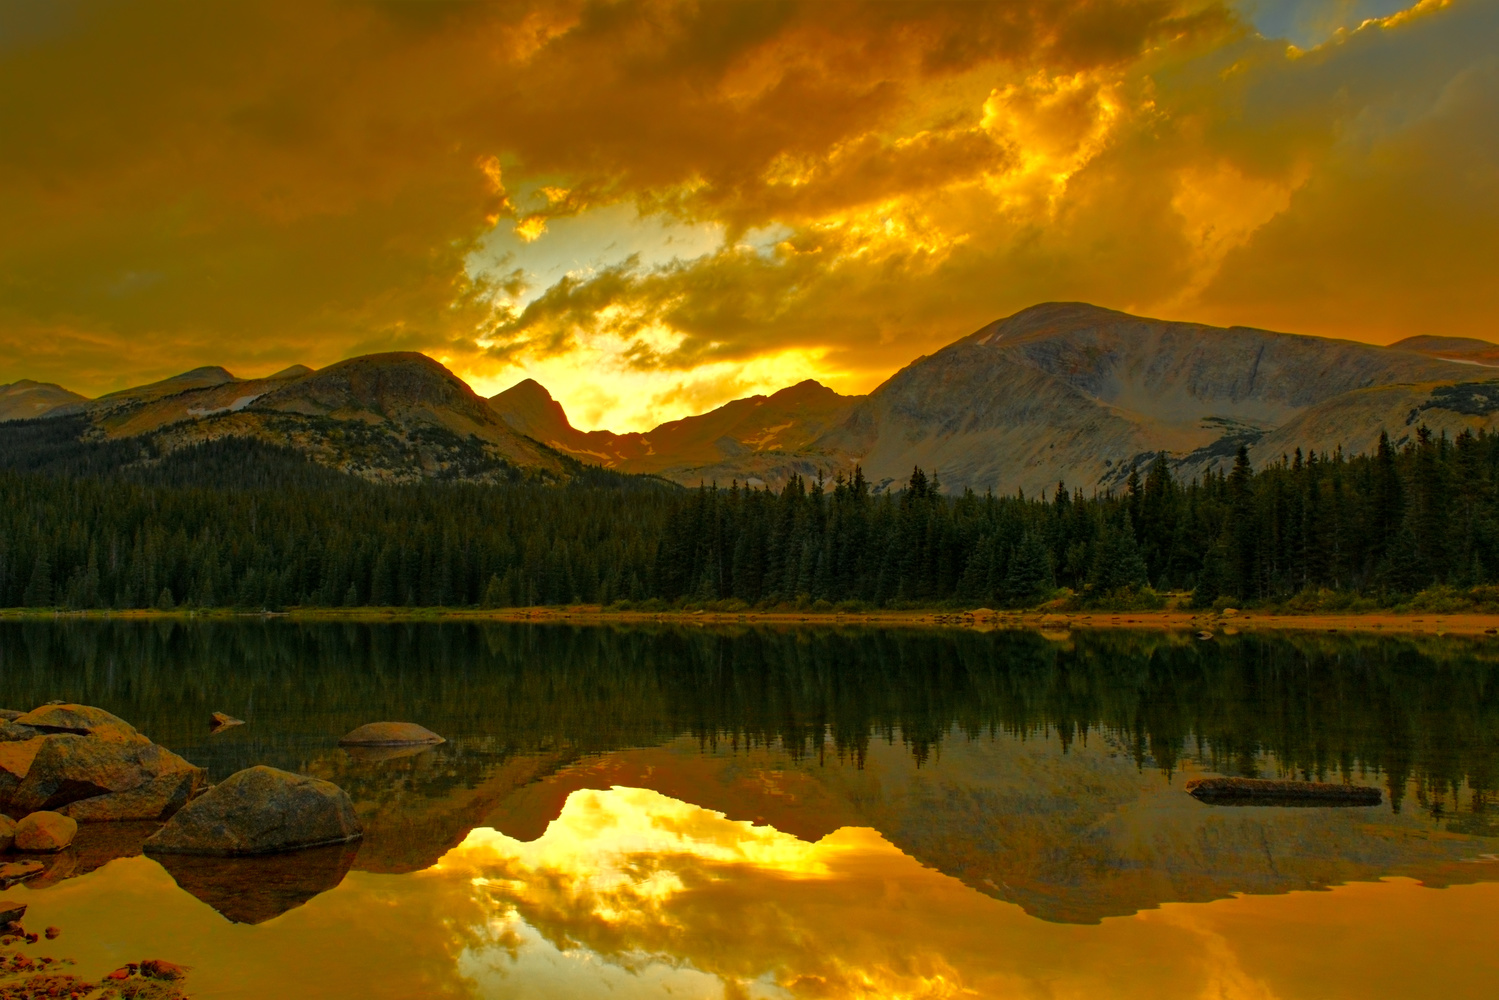 Golden Sunset at Brainard Lake by Tong Thao